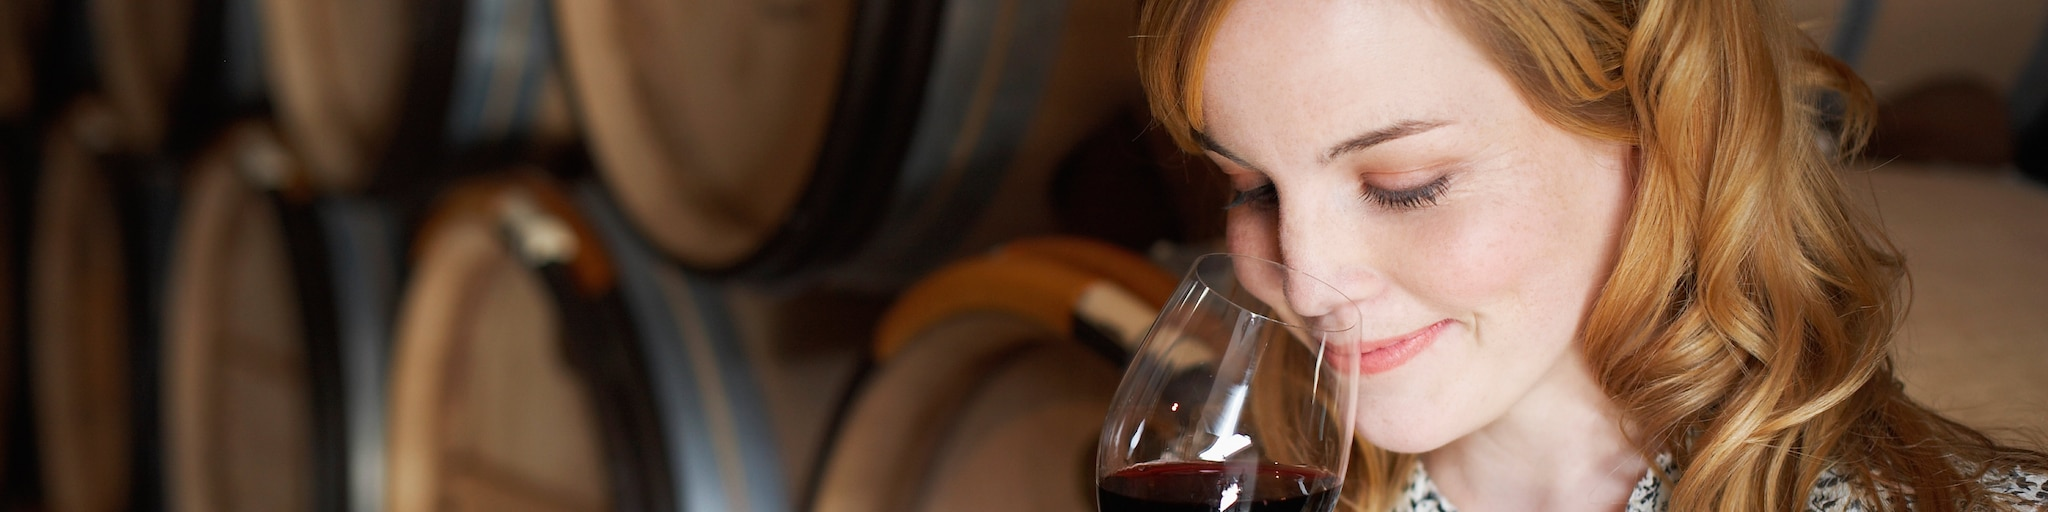 A woman sniffs the red wine in her wine glass